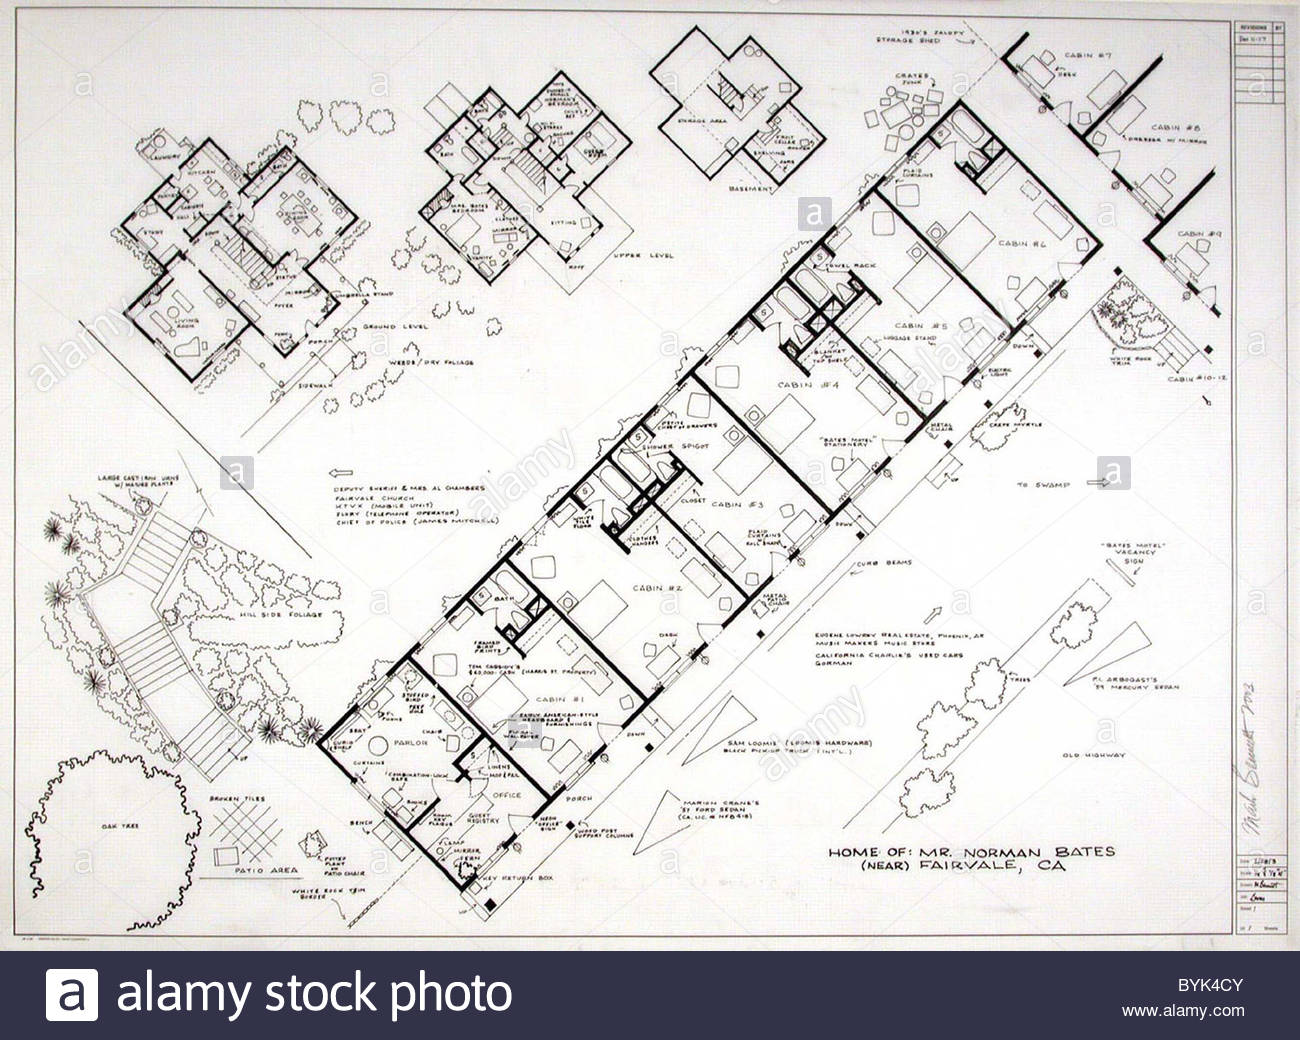 Fantasy Floor Plans Psycho Bates Motel Ever Wanted To